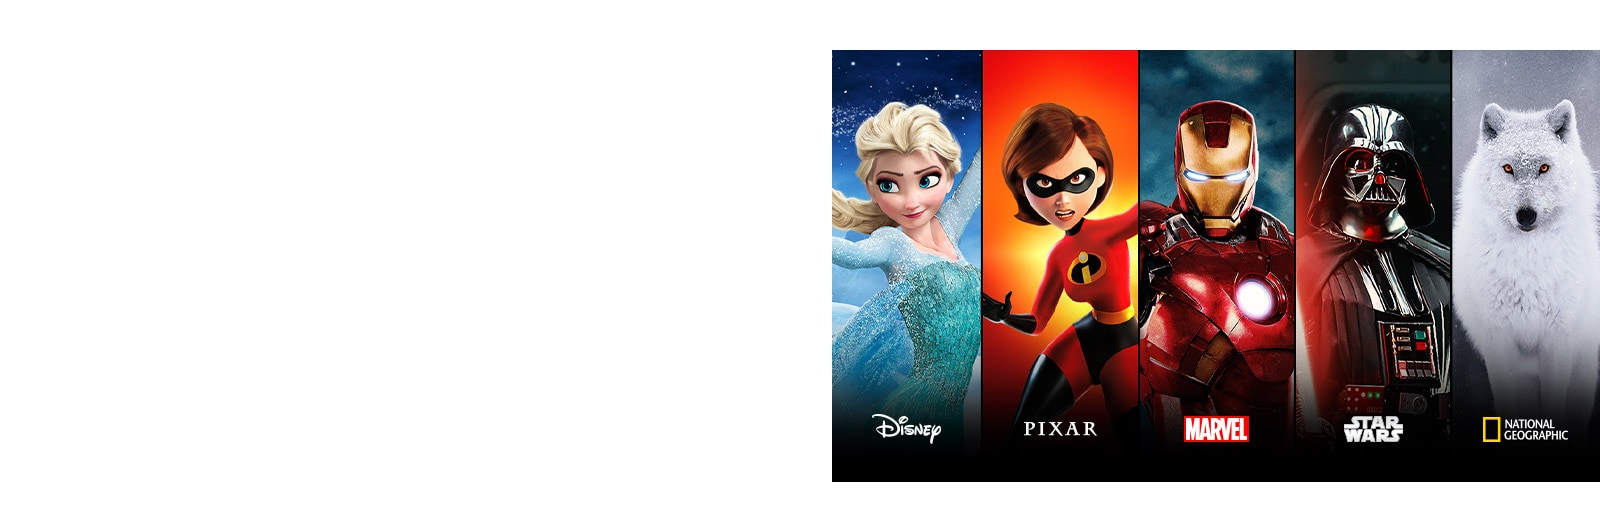 Disney Frozen, Pixar Incredibles, Marvel Iron Man, Star Wars, and National Geographic title cards